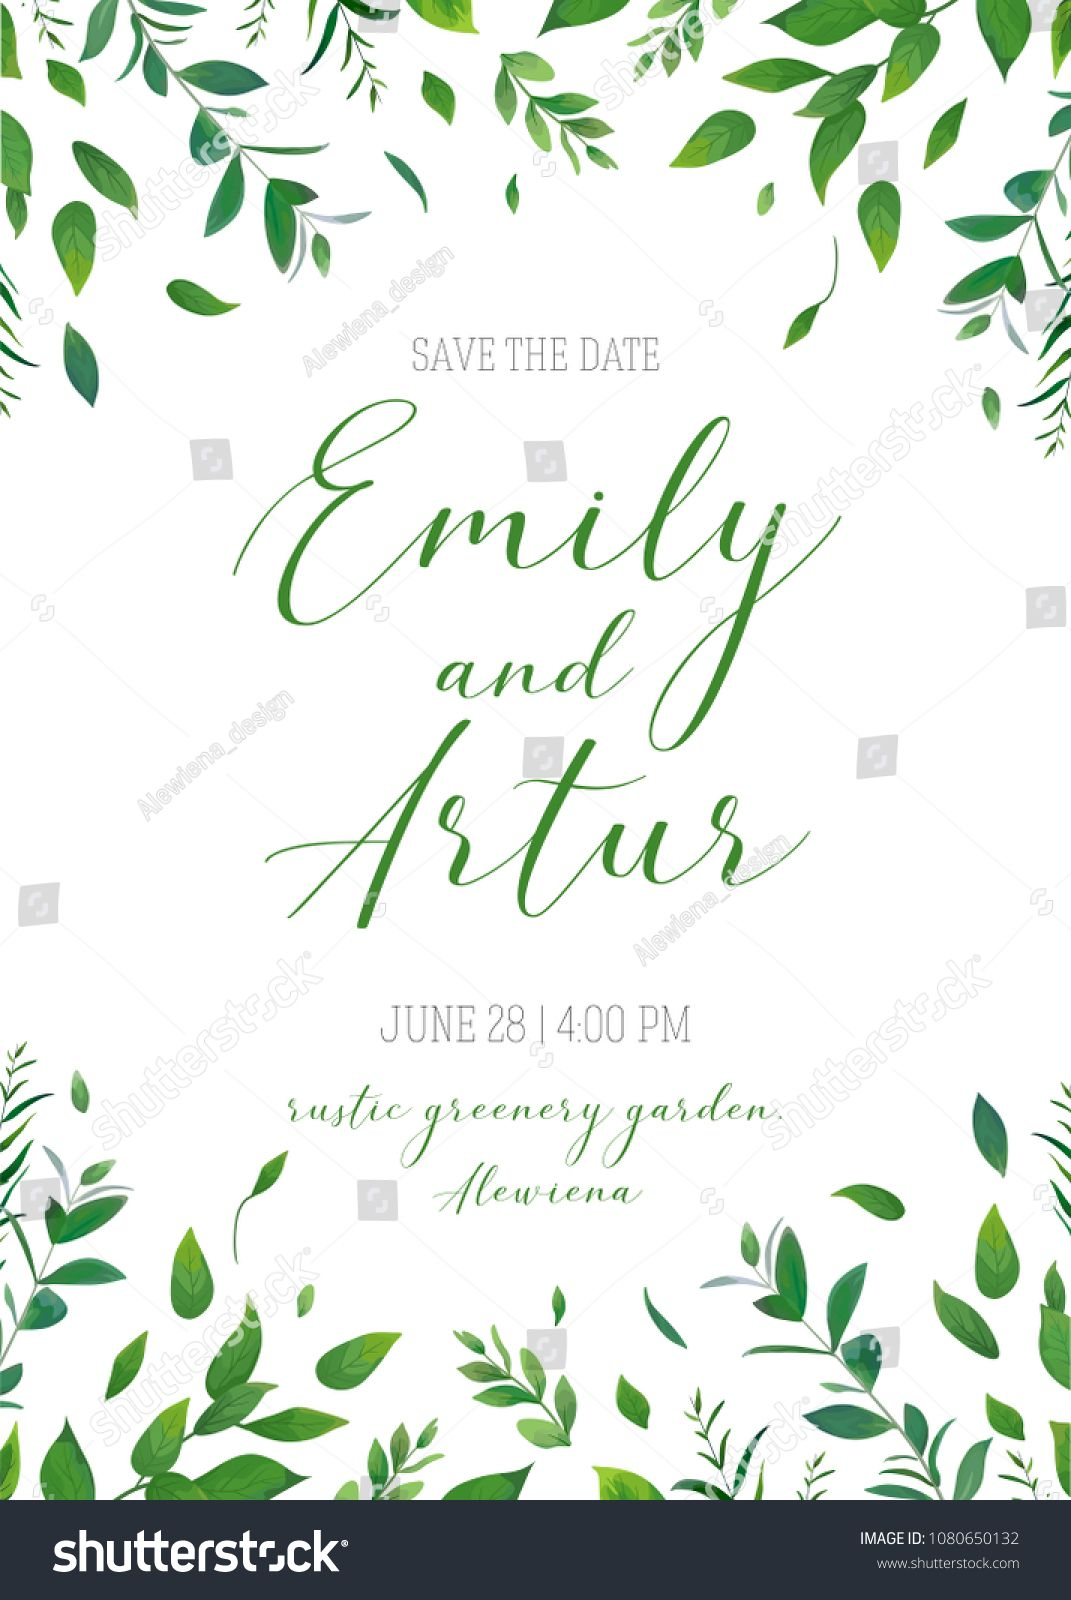 Wedding Floral Greenery Invitation Invite Save The Date Card Vector Design Rustic Natural